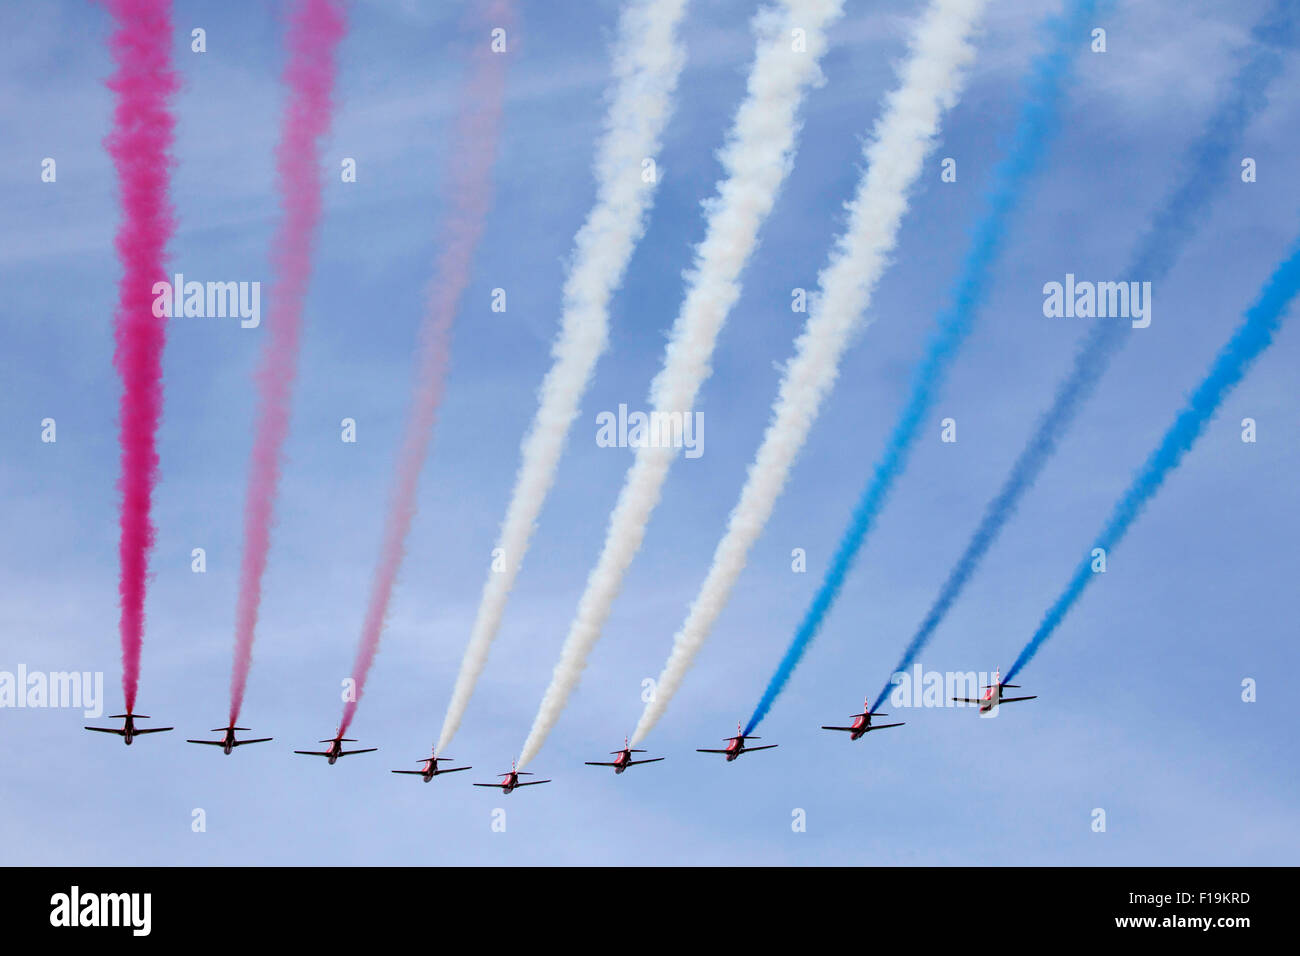 Royal Air Force Aerobatic Team Red Arrows at RIAT Royal International Air Tattoo RAF Fairford July 2015 Stock Photo